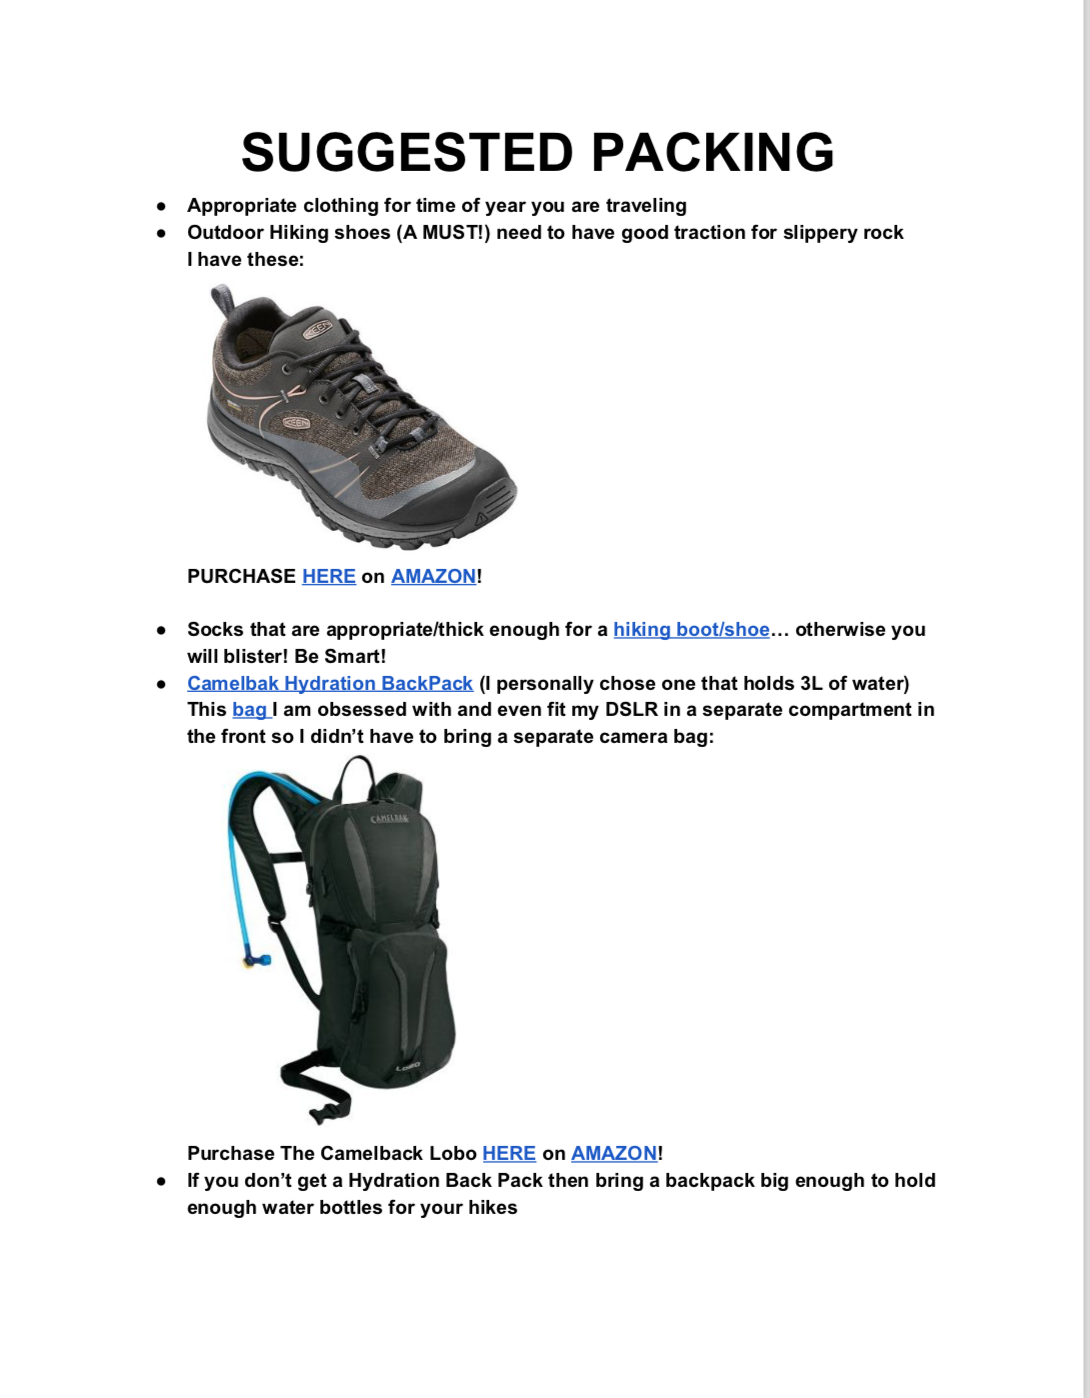 CLICK FOR COMPLETE PACKING LIST